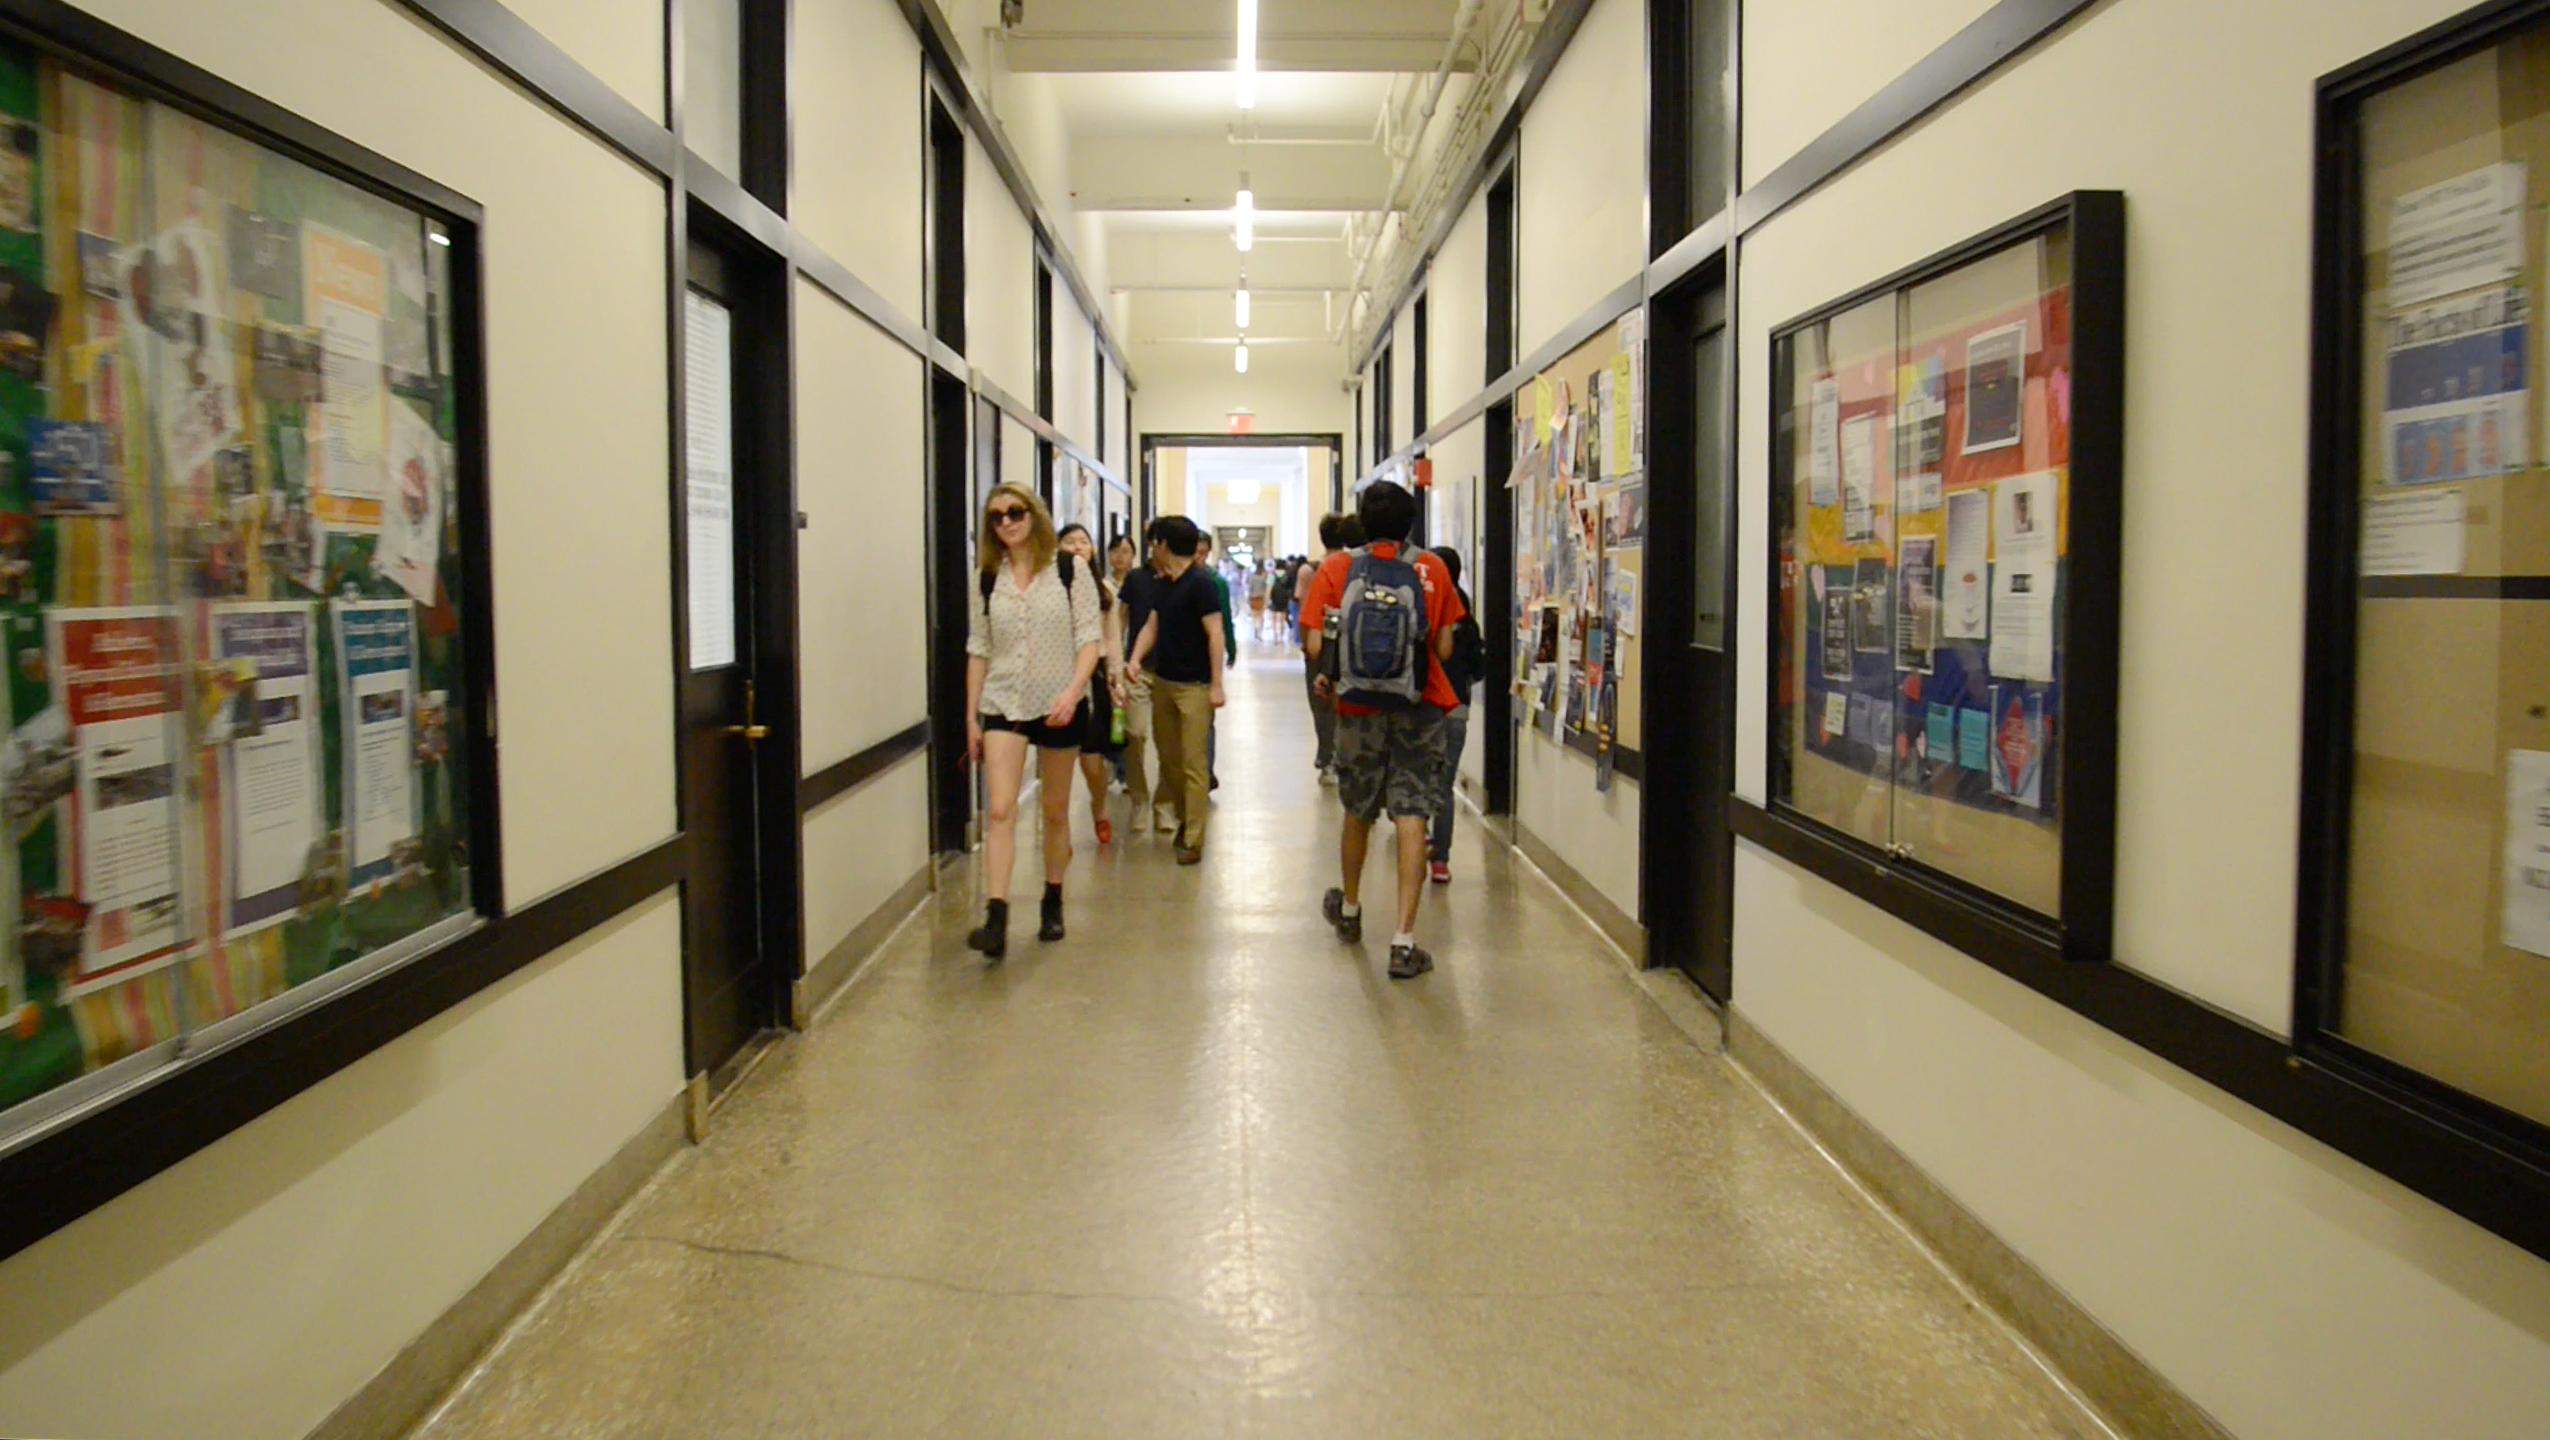 MIT's Infinite Corridor; photo: Christopher Harting